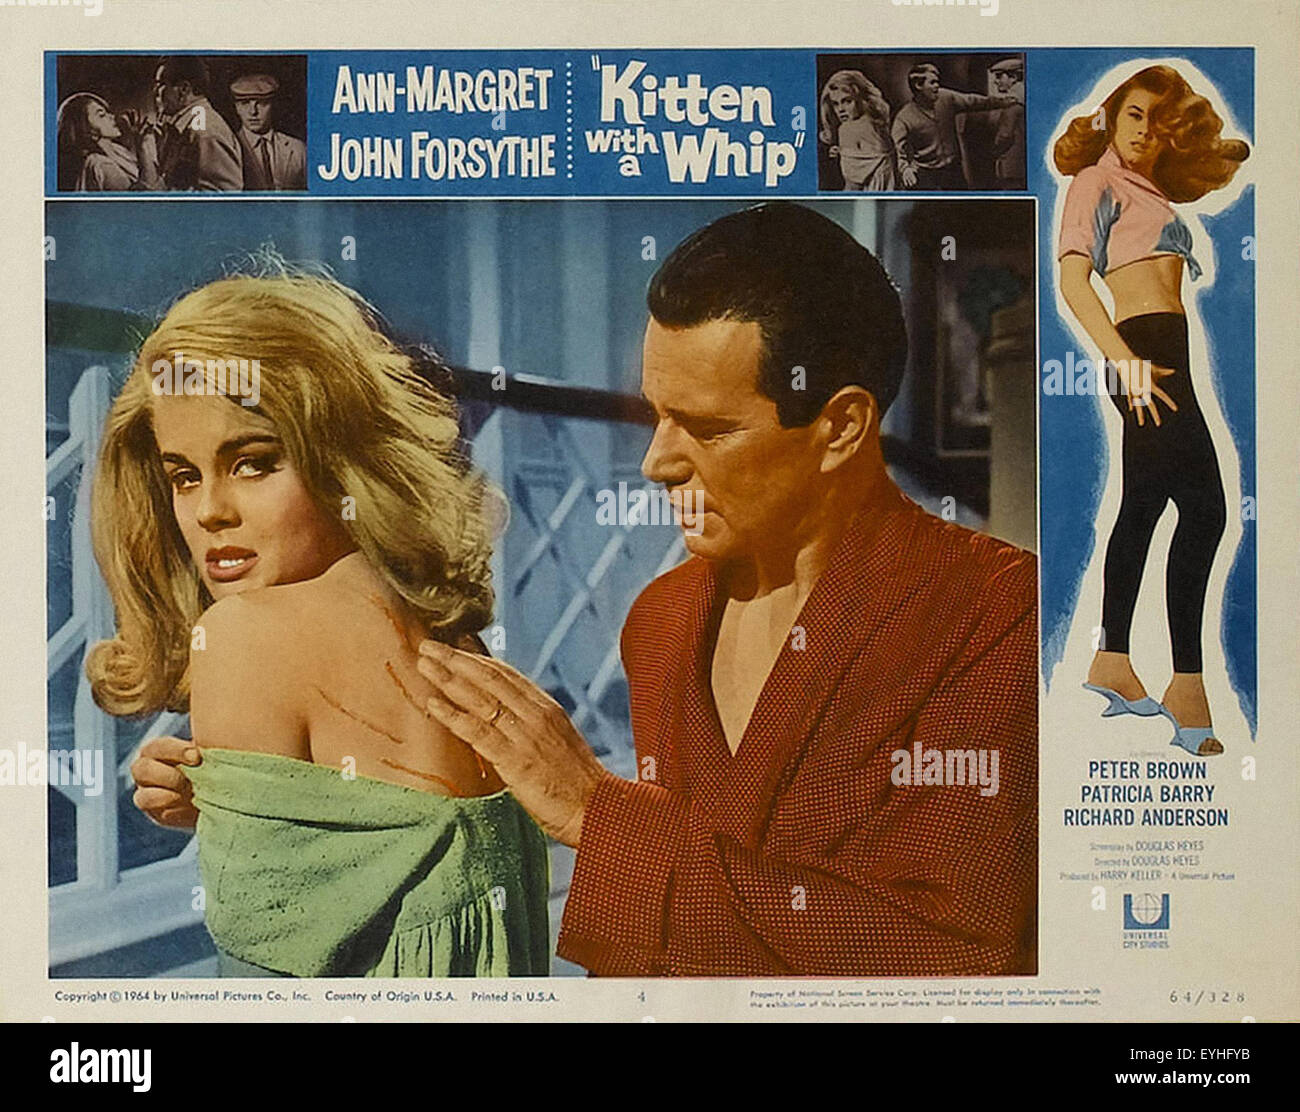 Kitten With a Whip - Ann-Margret - Movie Poster - Stock Image